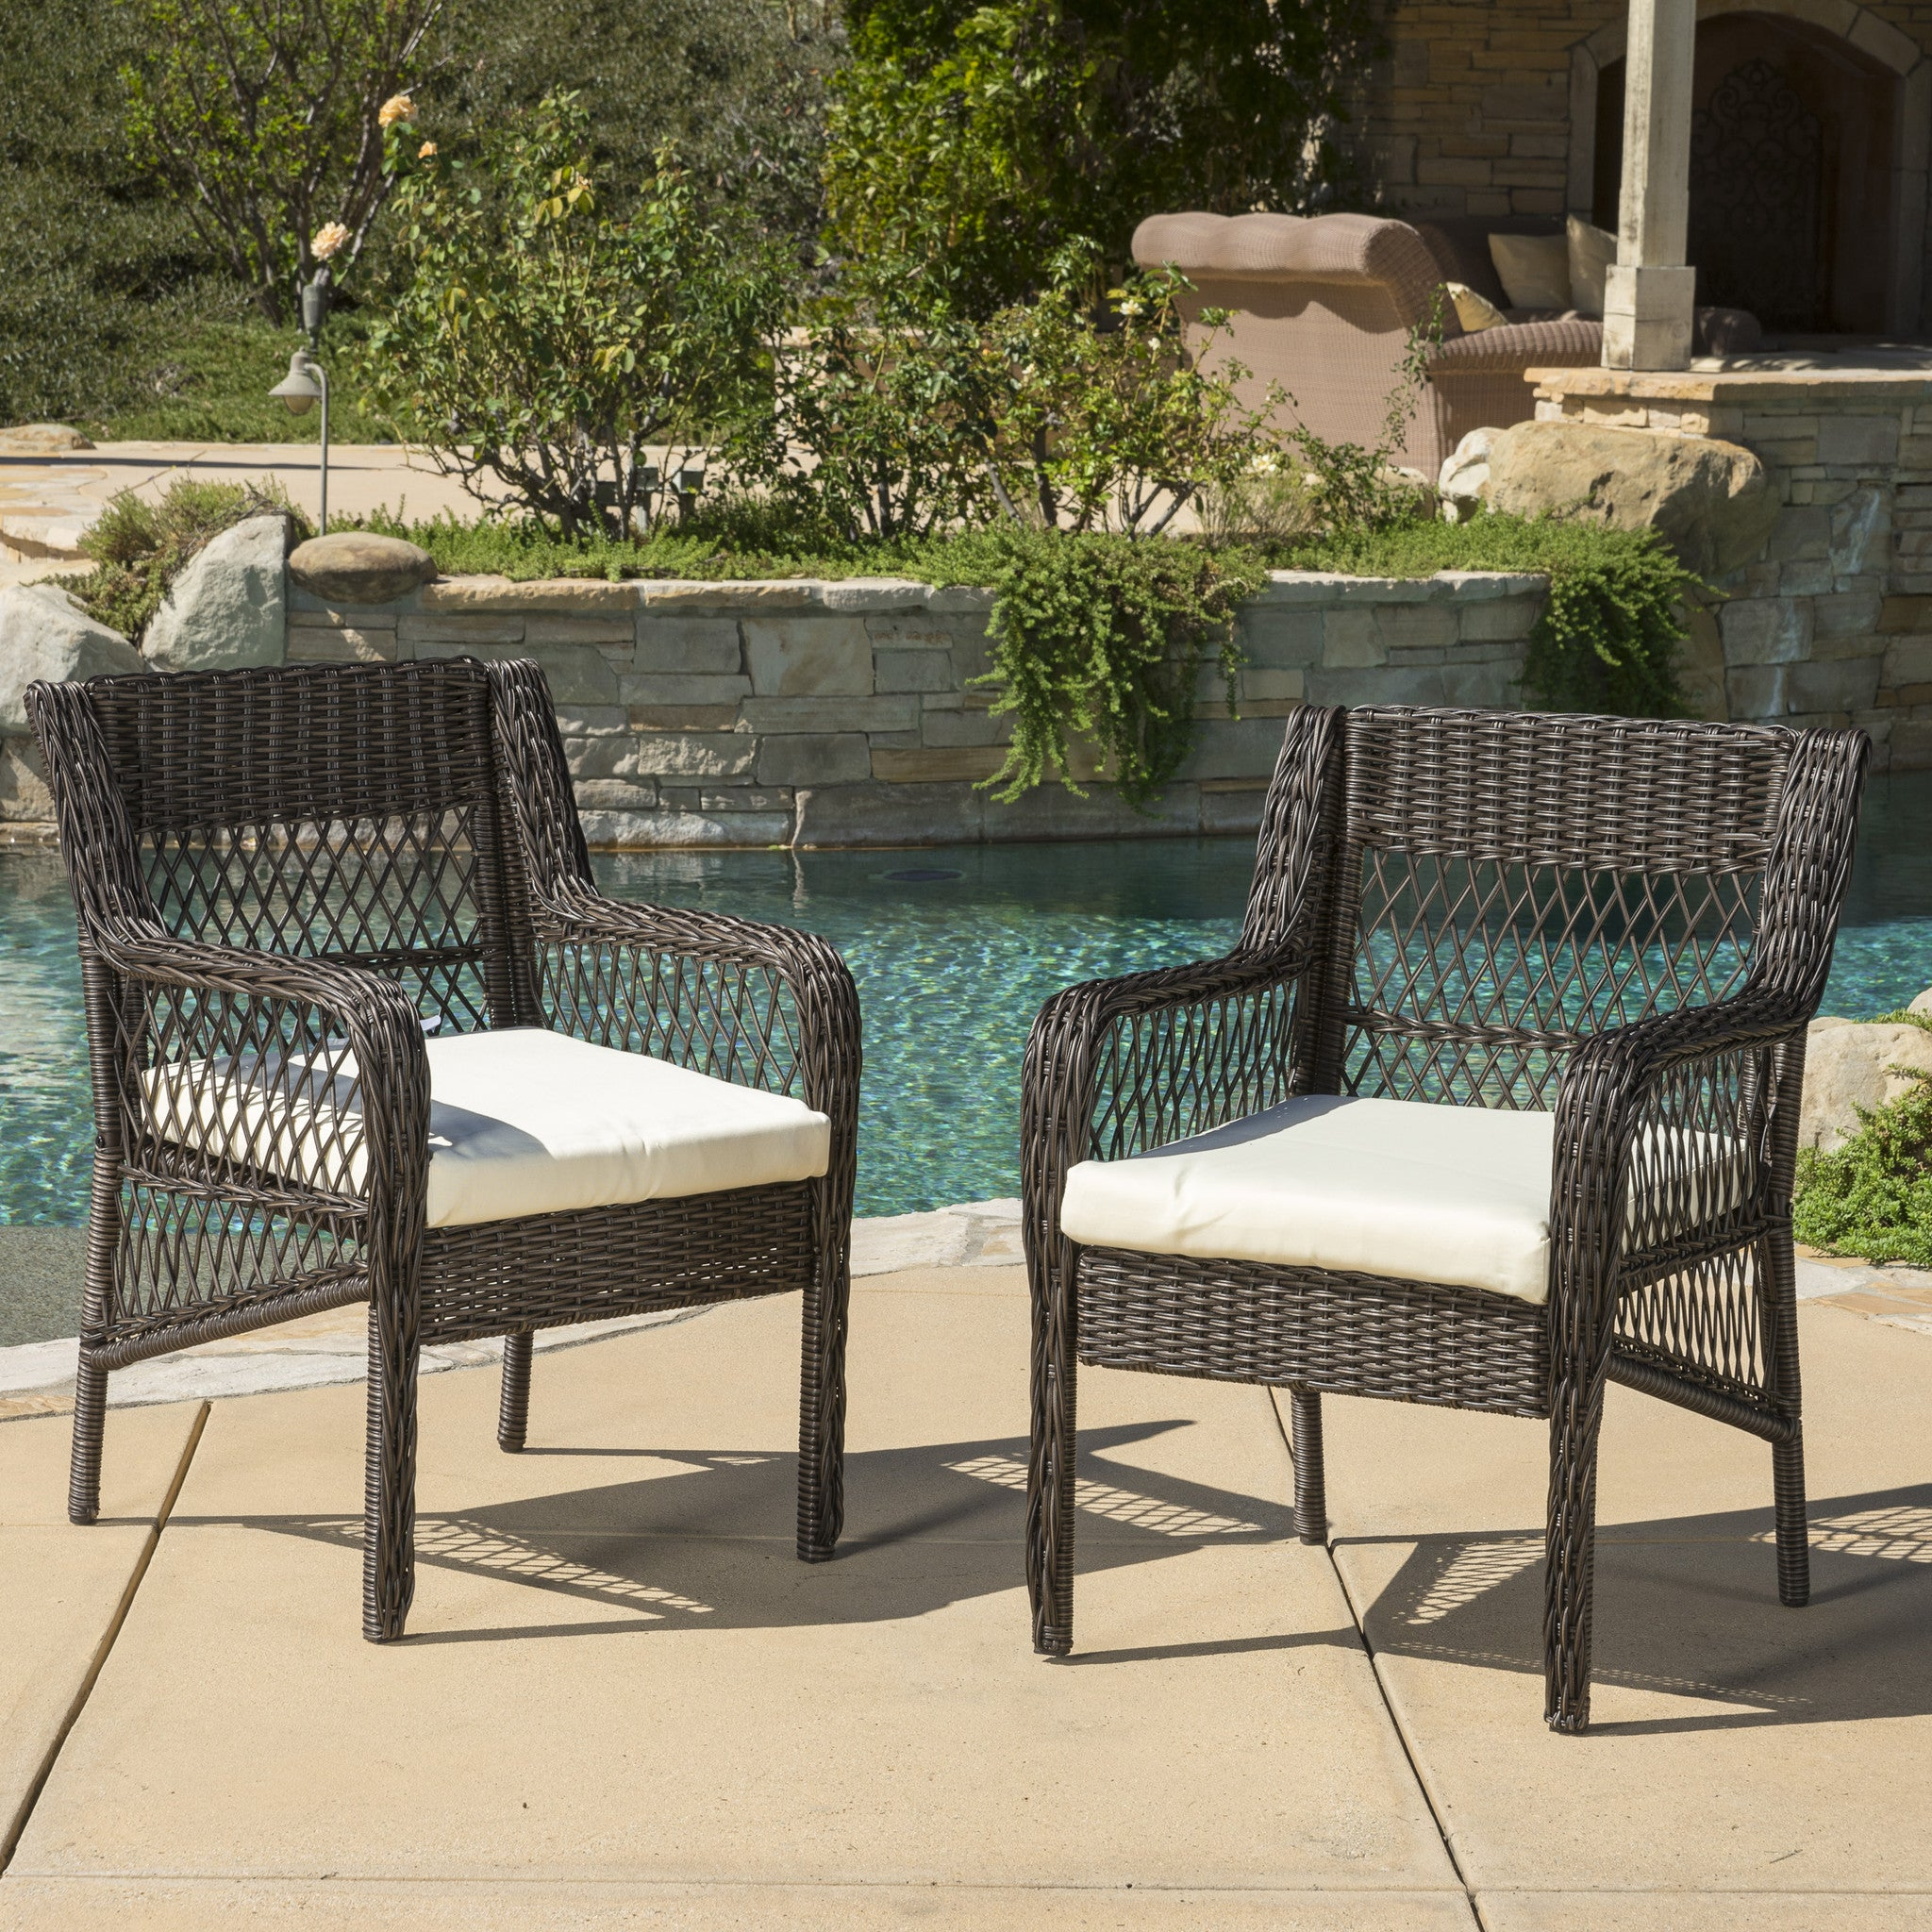 dining outdoor patio sets chair elegant wicker small quoet of chairs new